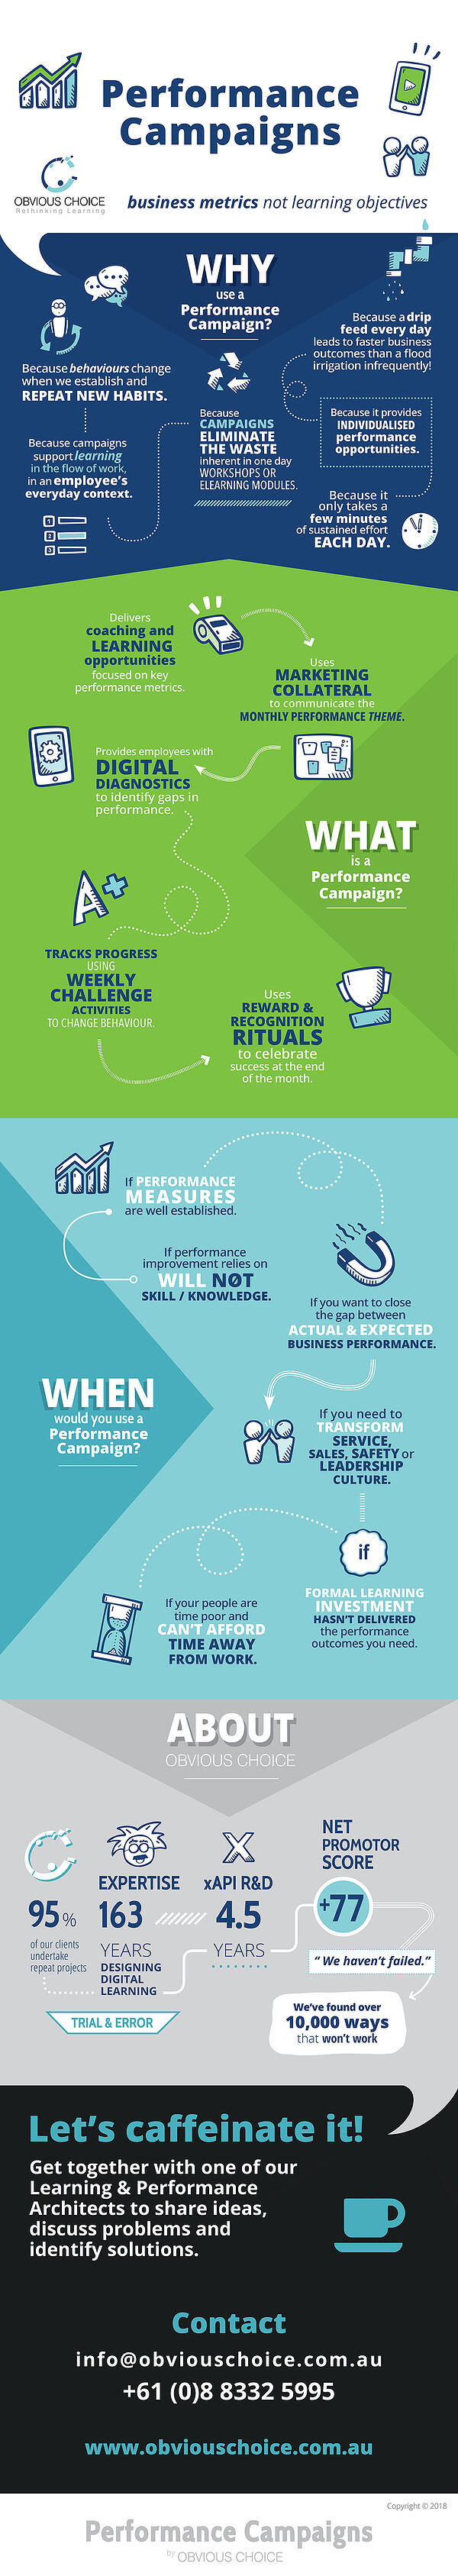 Performance-Campaigns-Obvious-Choice-infographic